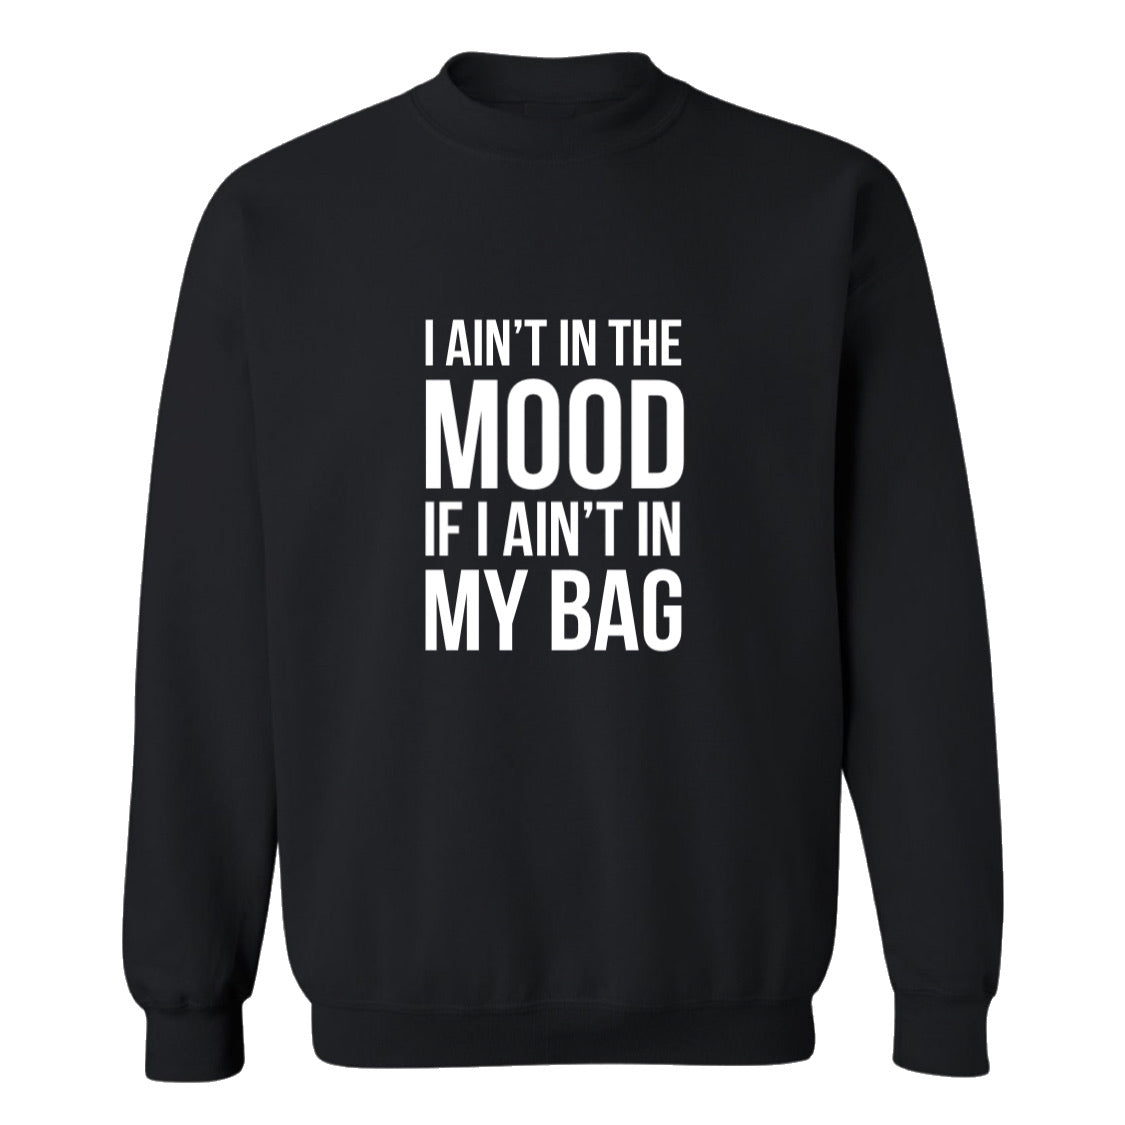 AIN'T IN THE MOOD SWEATSHIRT